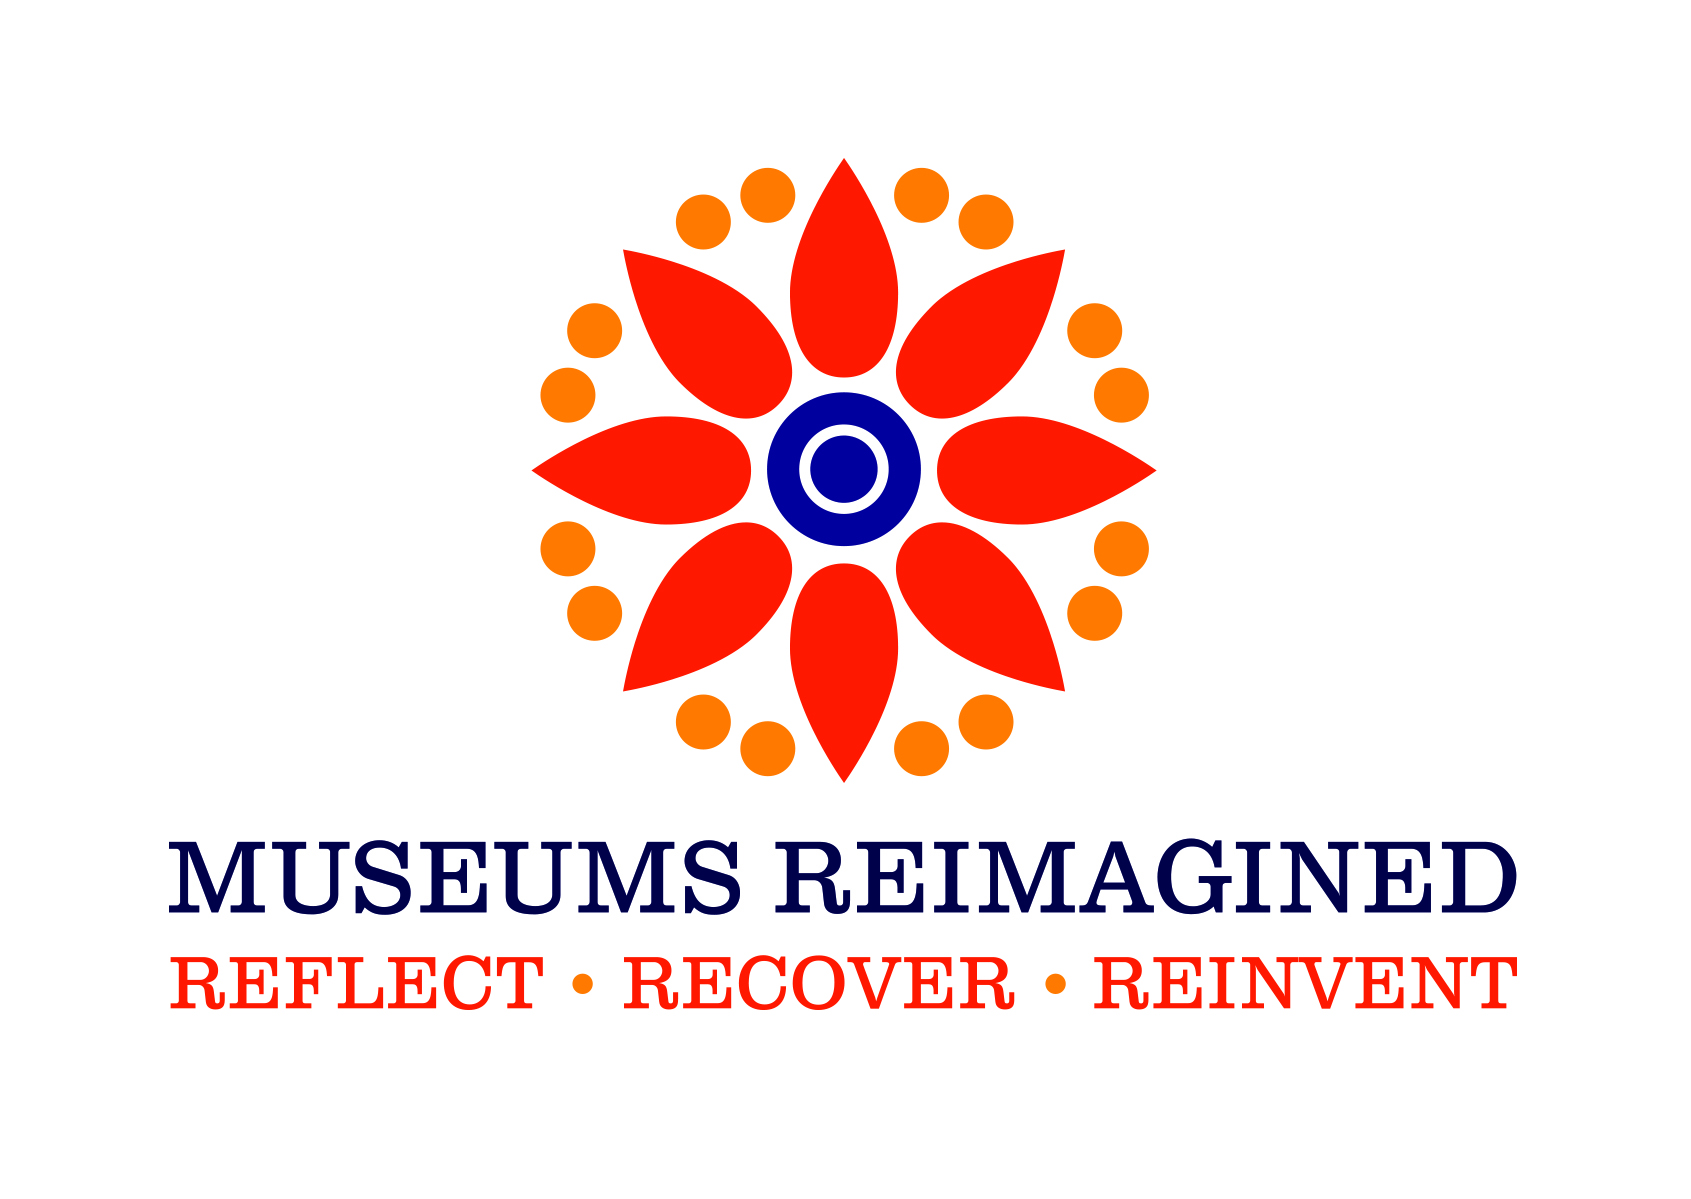 Museums Reimagined: Opportunities to Reflect, Recover, and Reinvent